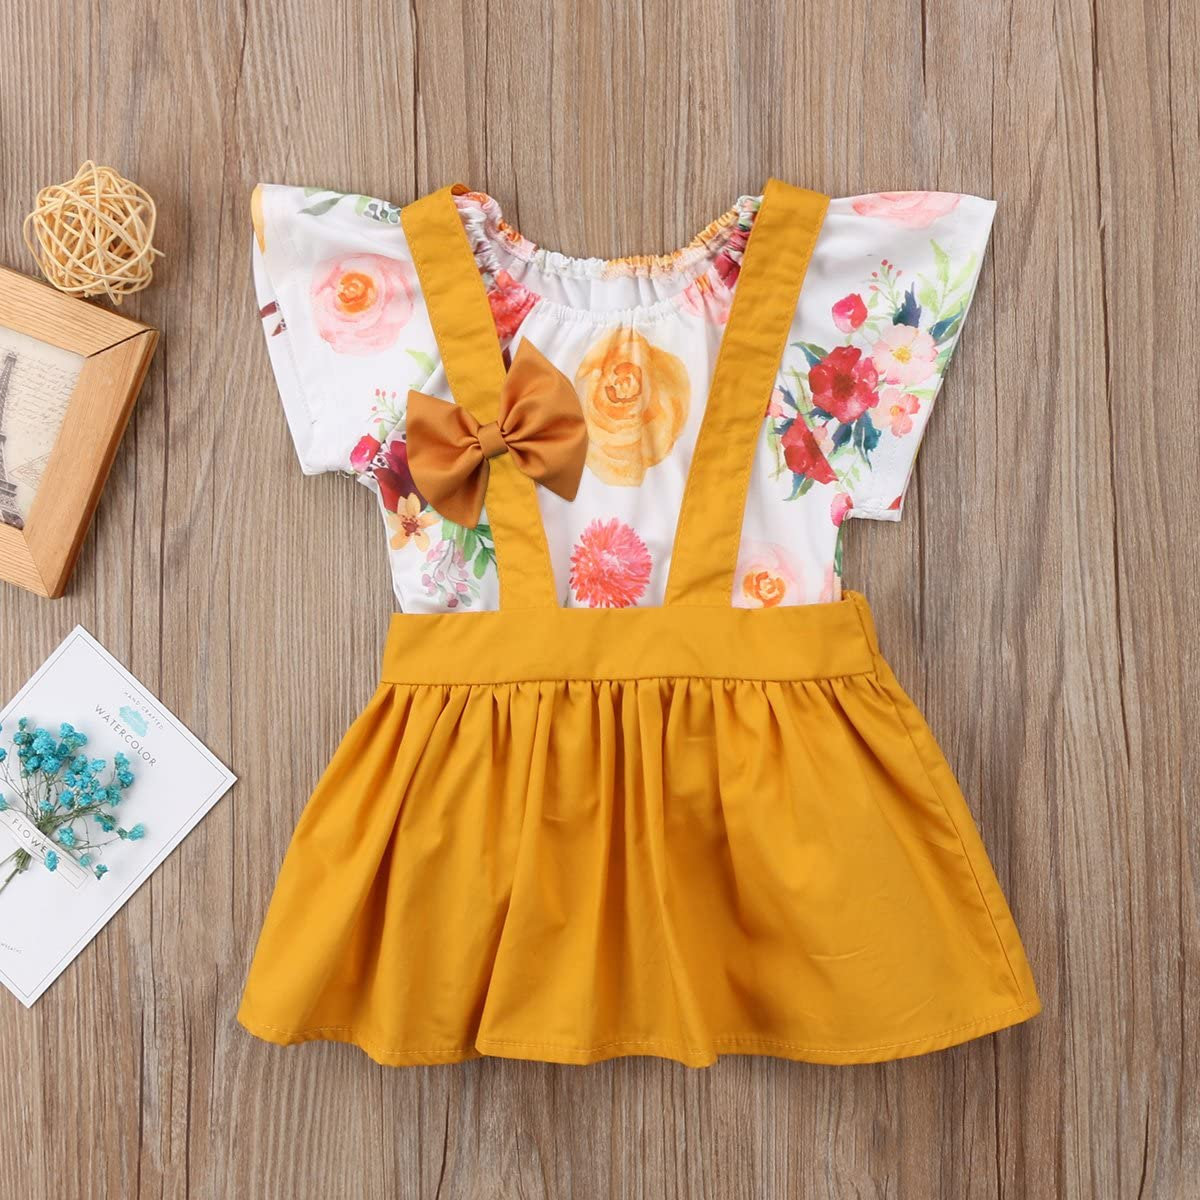 Toddler Baby Girl 2pcs Outfits Floral Short Sleeve Ruffled T-Shirt Top+Suspender Skirt Overalls Set